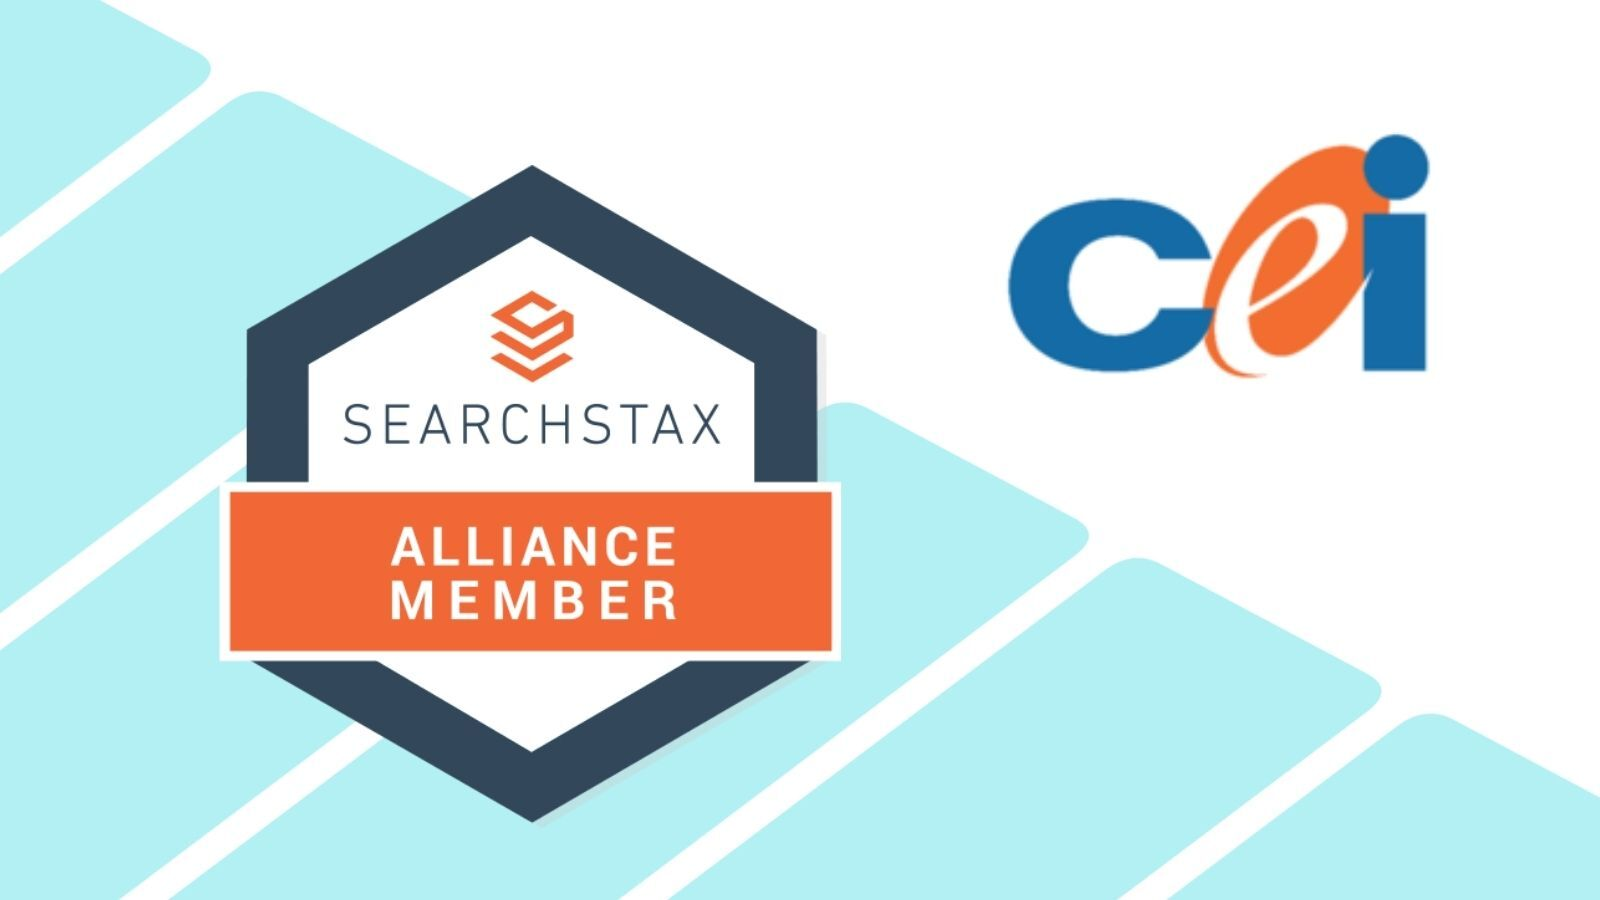 SearchStax Welcomes CEI to Alliance Partner Program